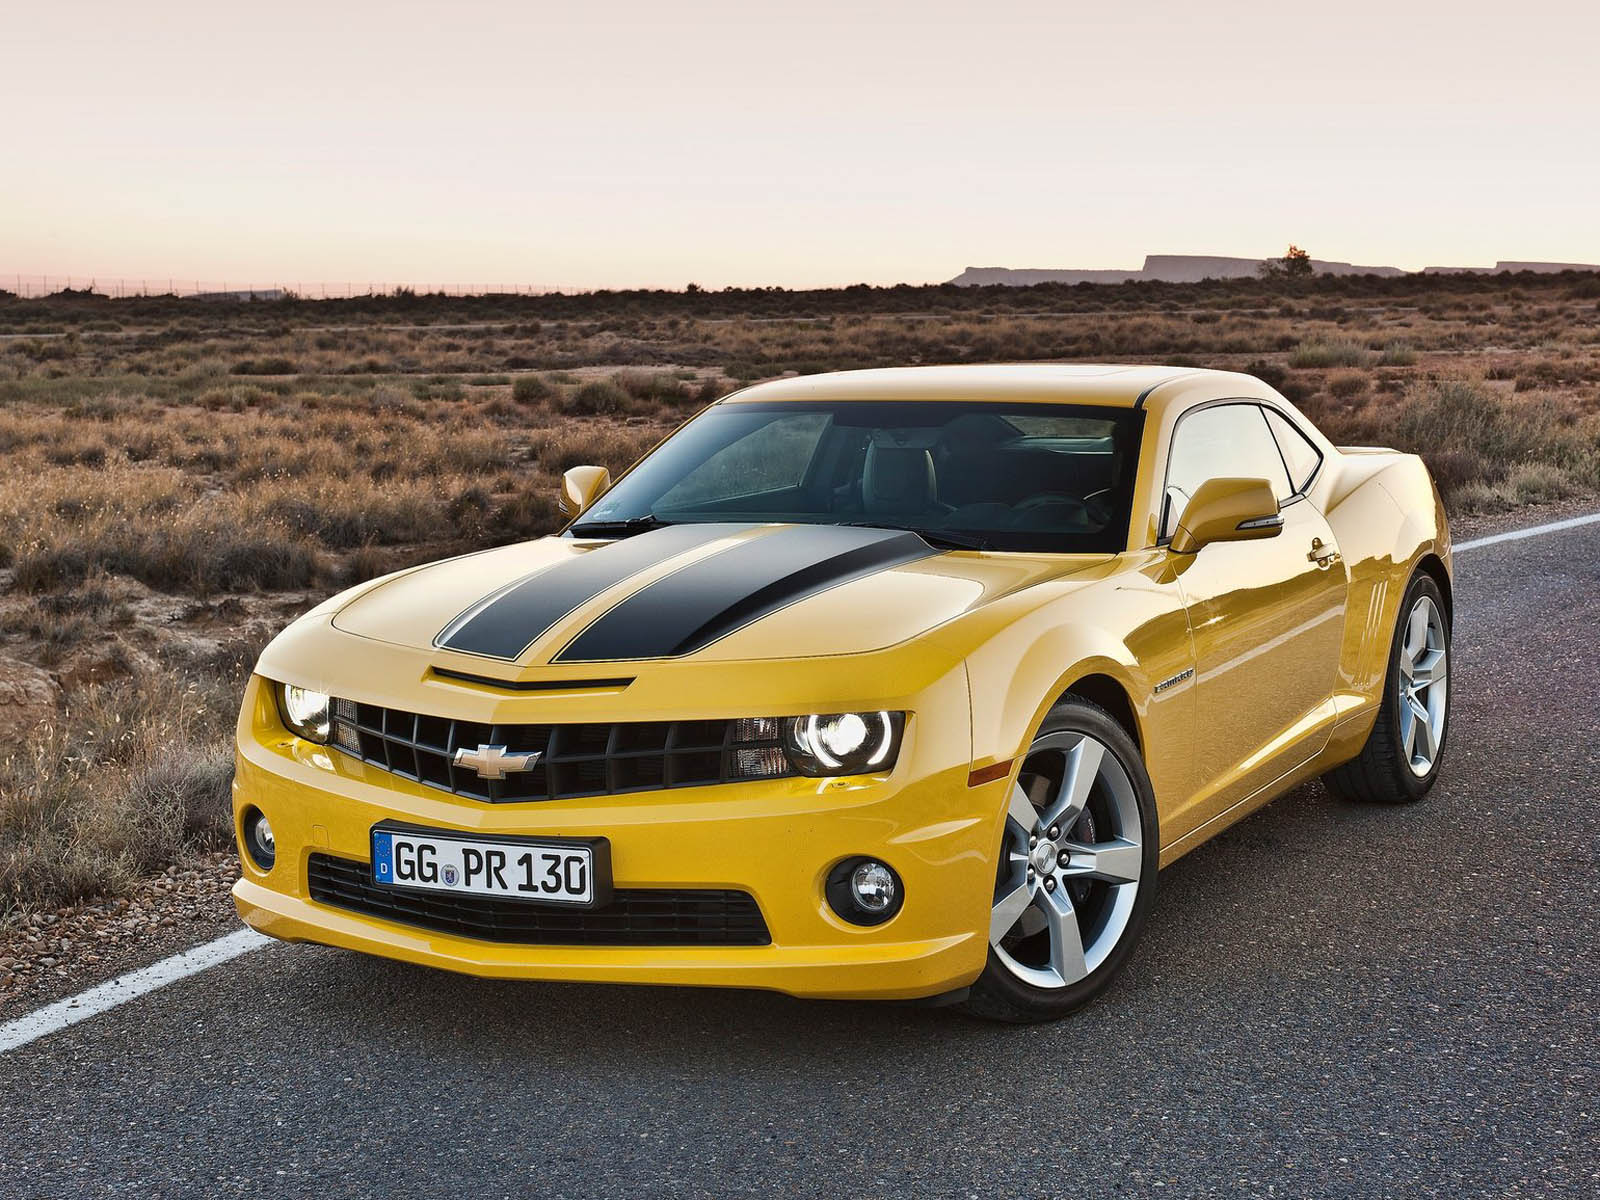 Top Cars Zone: Camaro SS 2012 Yellow Picture